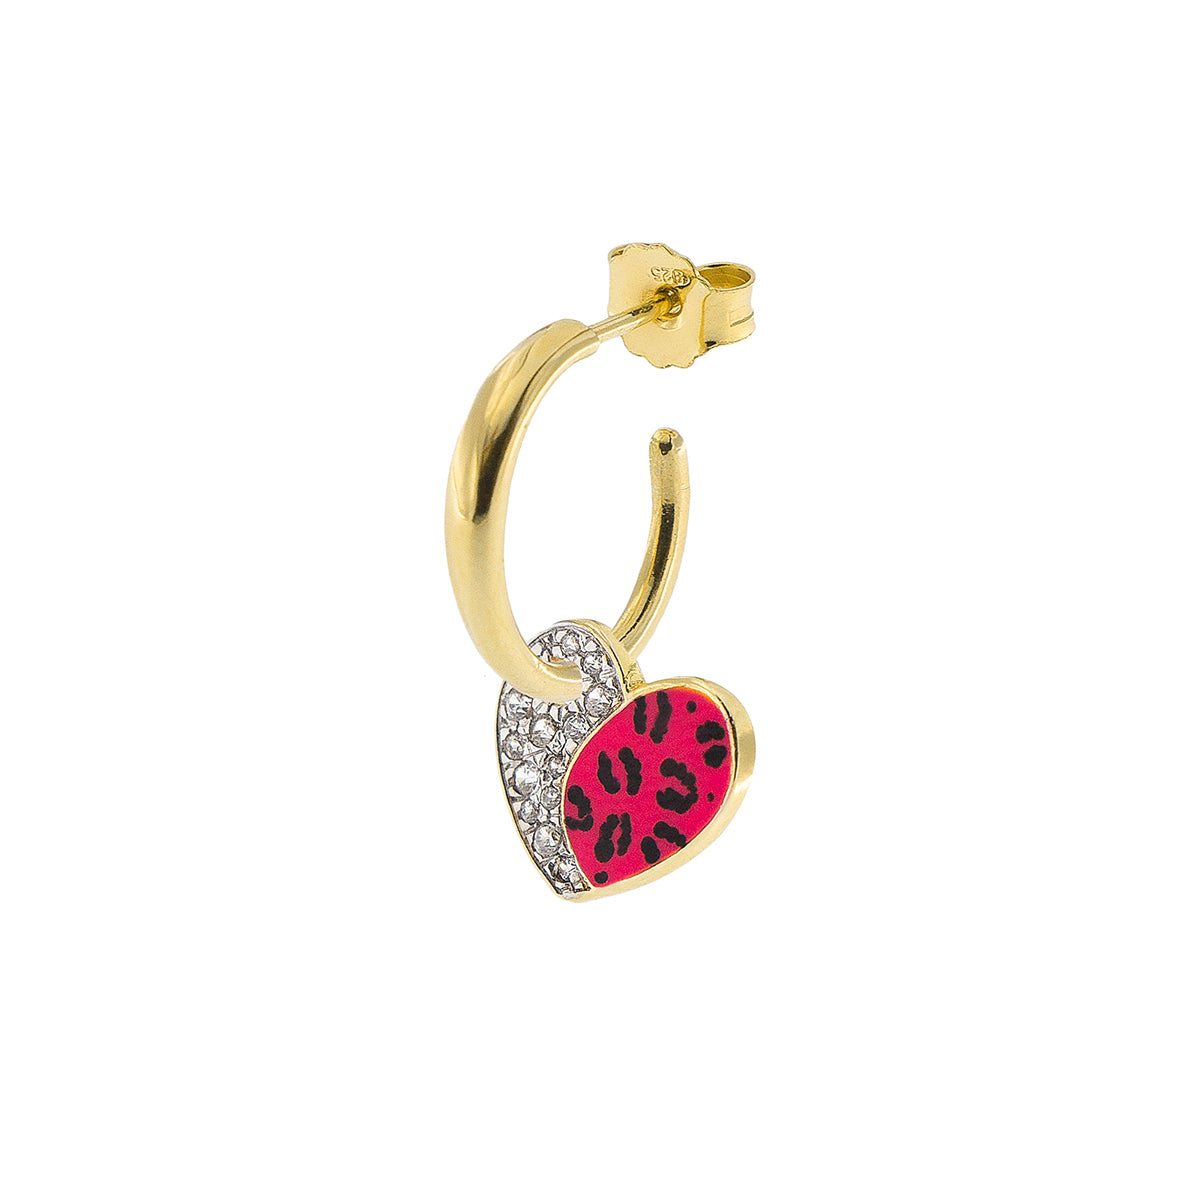 Earrings - Single Earring With Small Hoop and Heart - Leopard Print - 2 | Rue des Mille